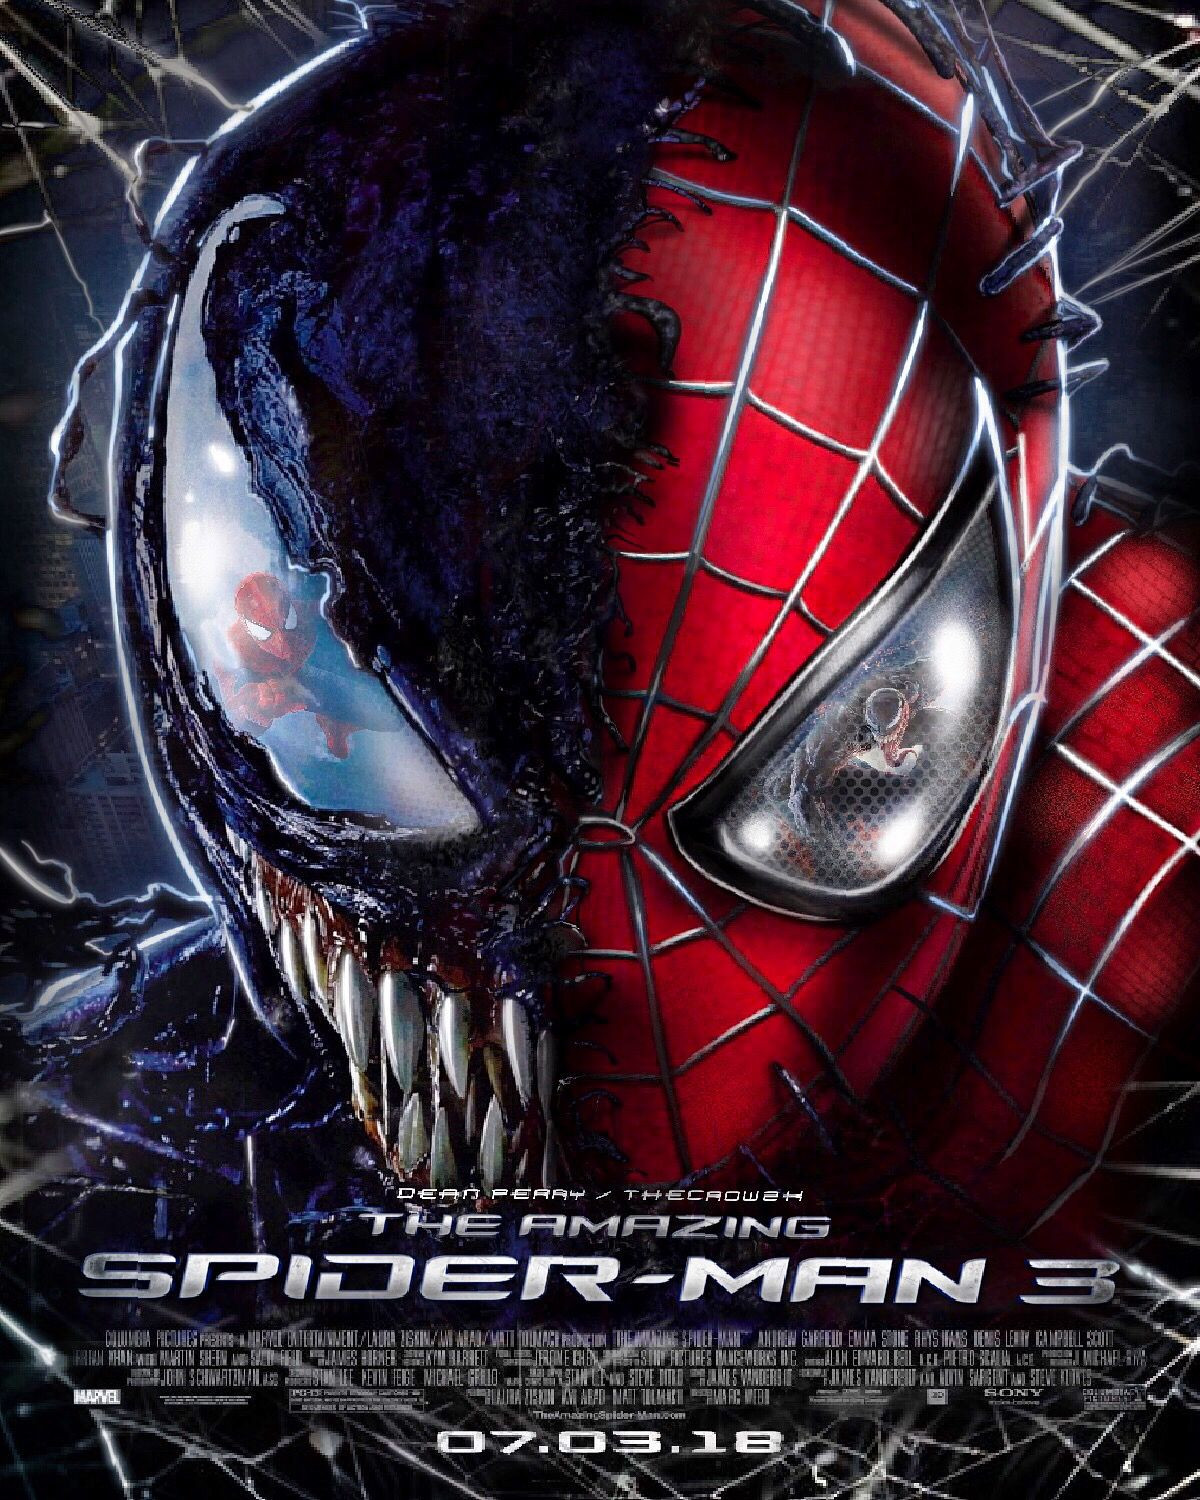 Spiderman 3 Awesome the Amazing Spider Man 3 Poster   Top Spiderman 3 Backgrounds   WallpaperAccess 1200x1500